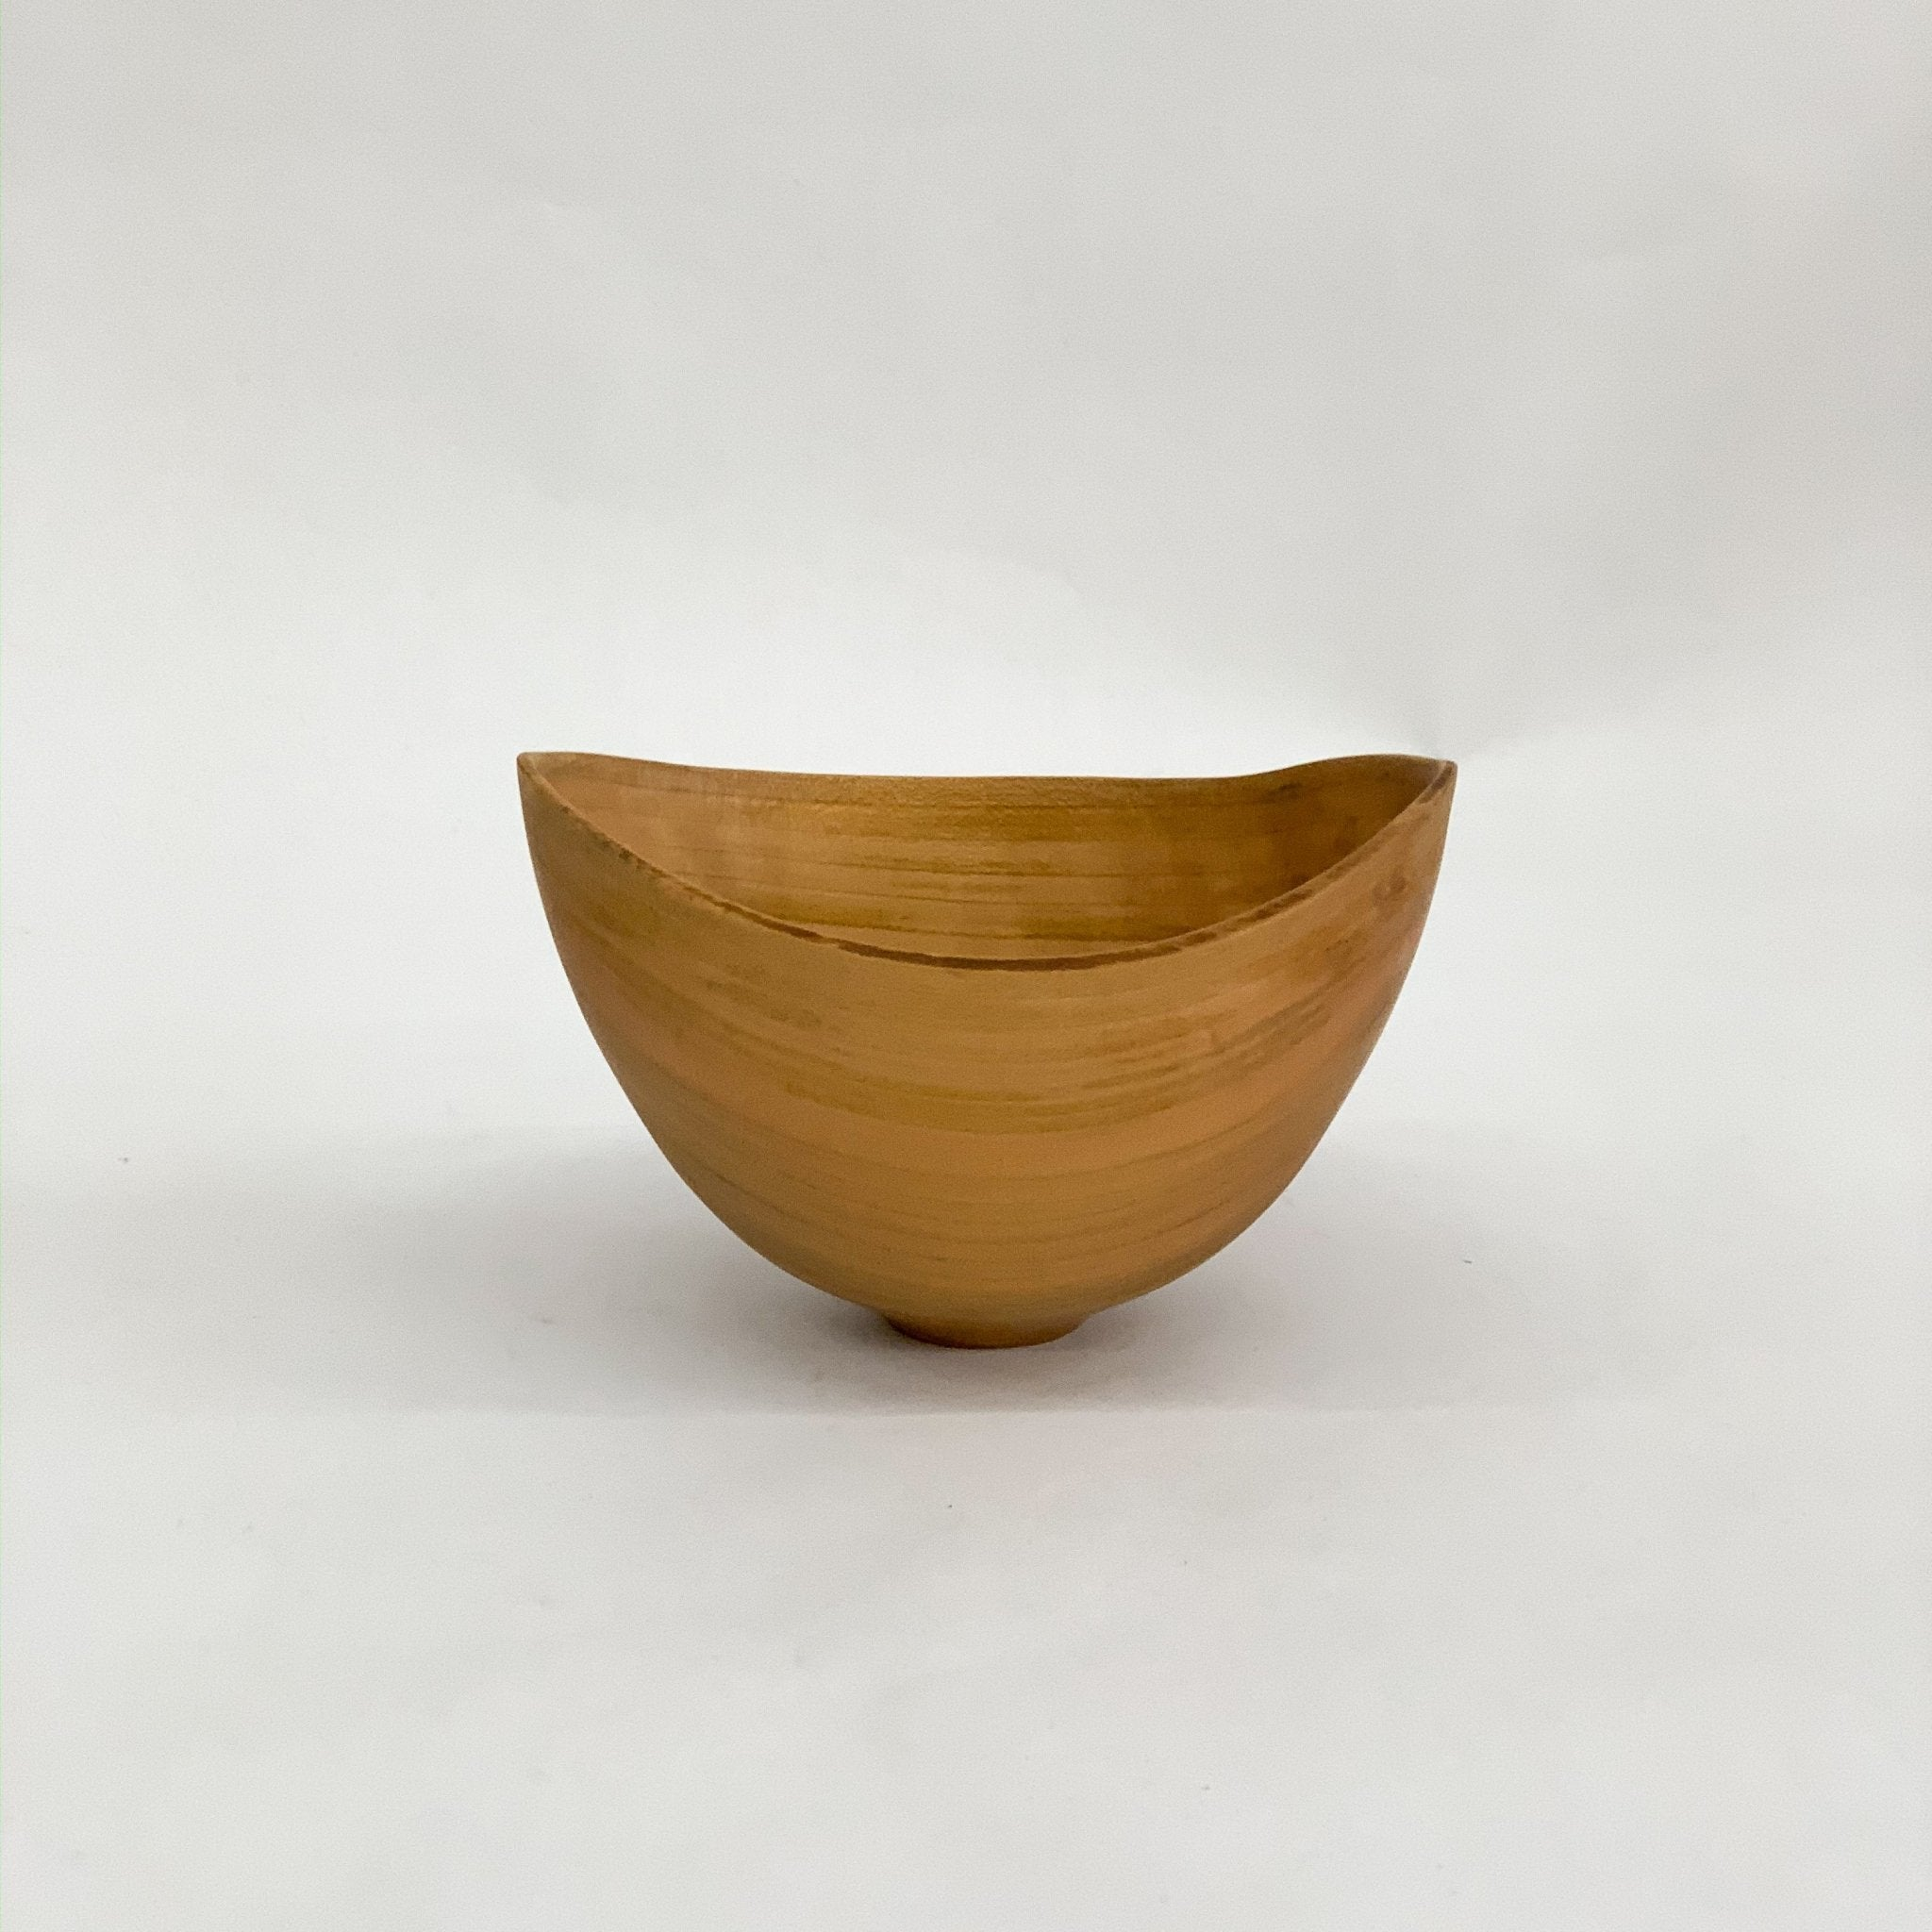 Wooden Bowl Sculpture by Kenji Usuda - tortoise general store